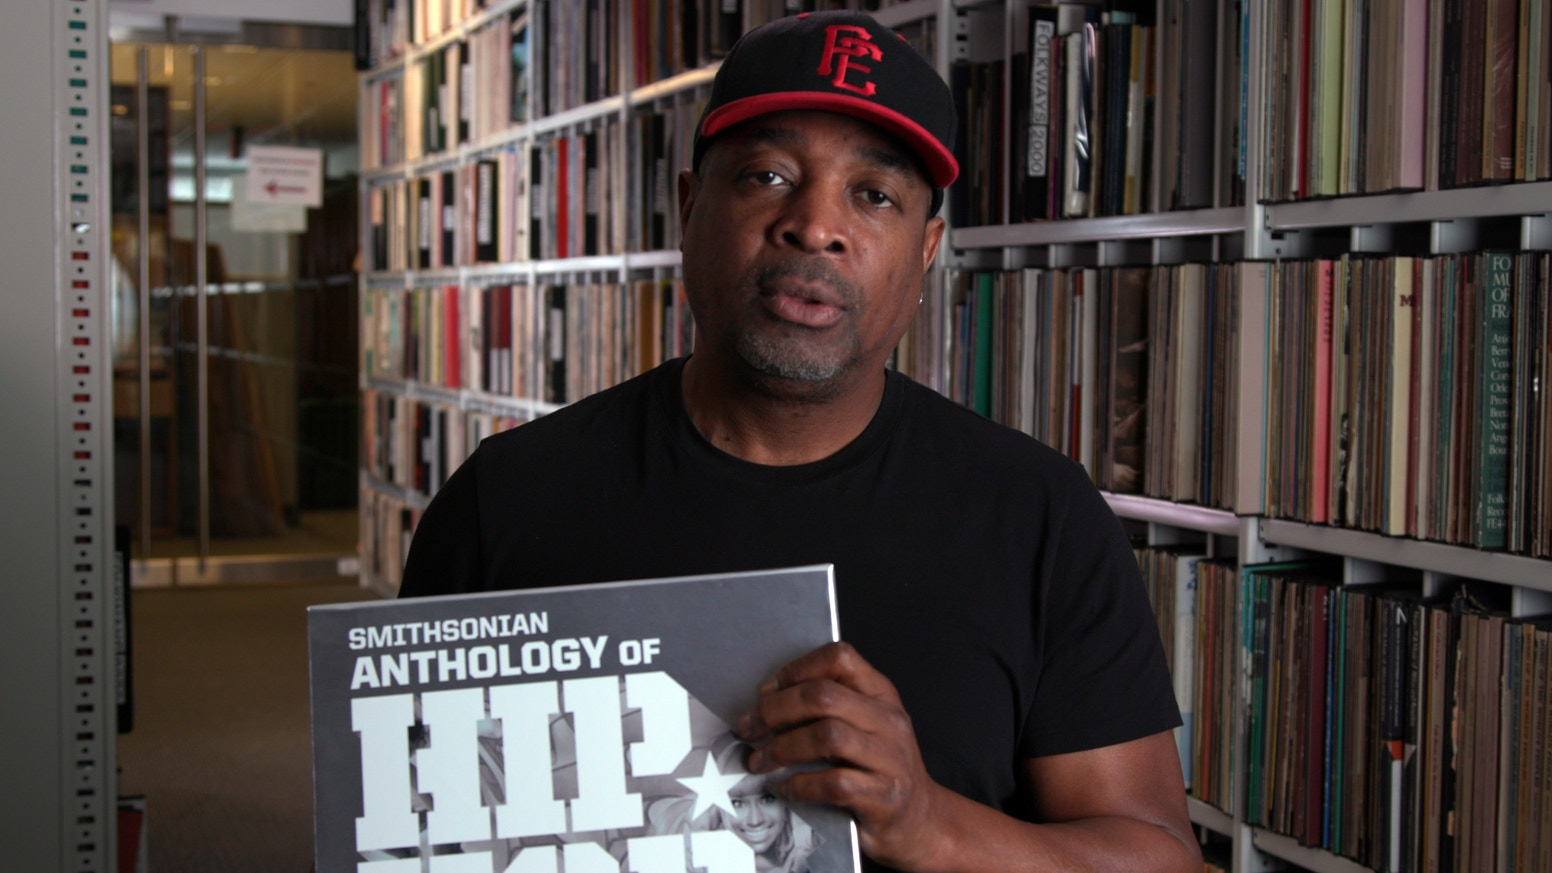 Make #HipHopHistory with a landmark collection of music, stunning visuals, and powerful stories collected in a 300-page book and 9 CDs.